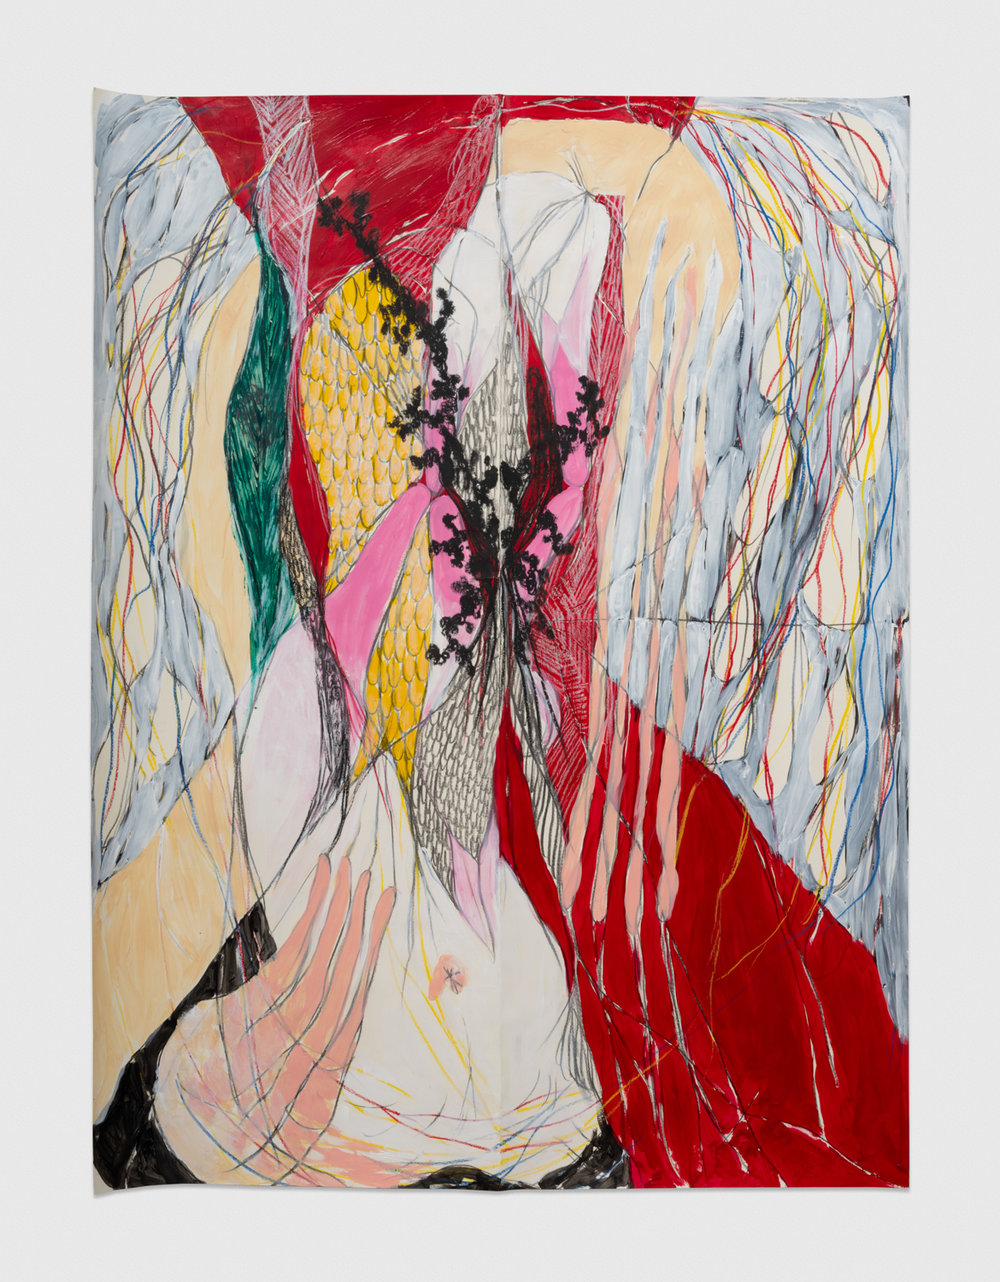 Naotaka Hiro Untitled (Wire), 2018 Acrylic, graphite and grease pencil on paper 42h x 32w in NaoH017